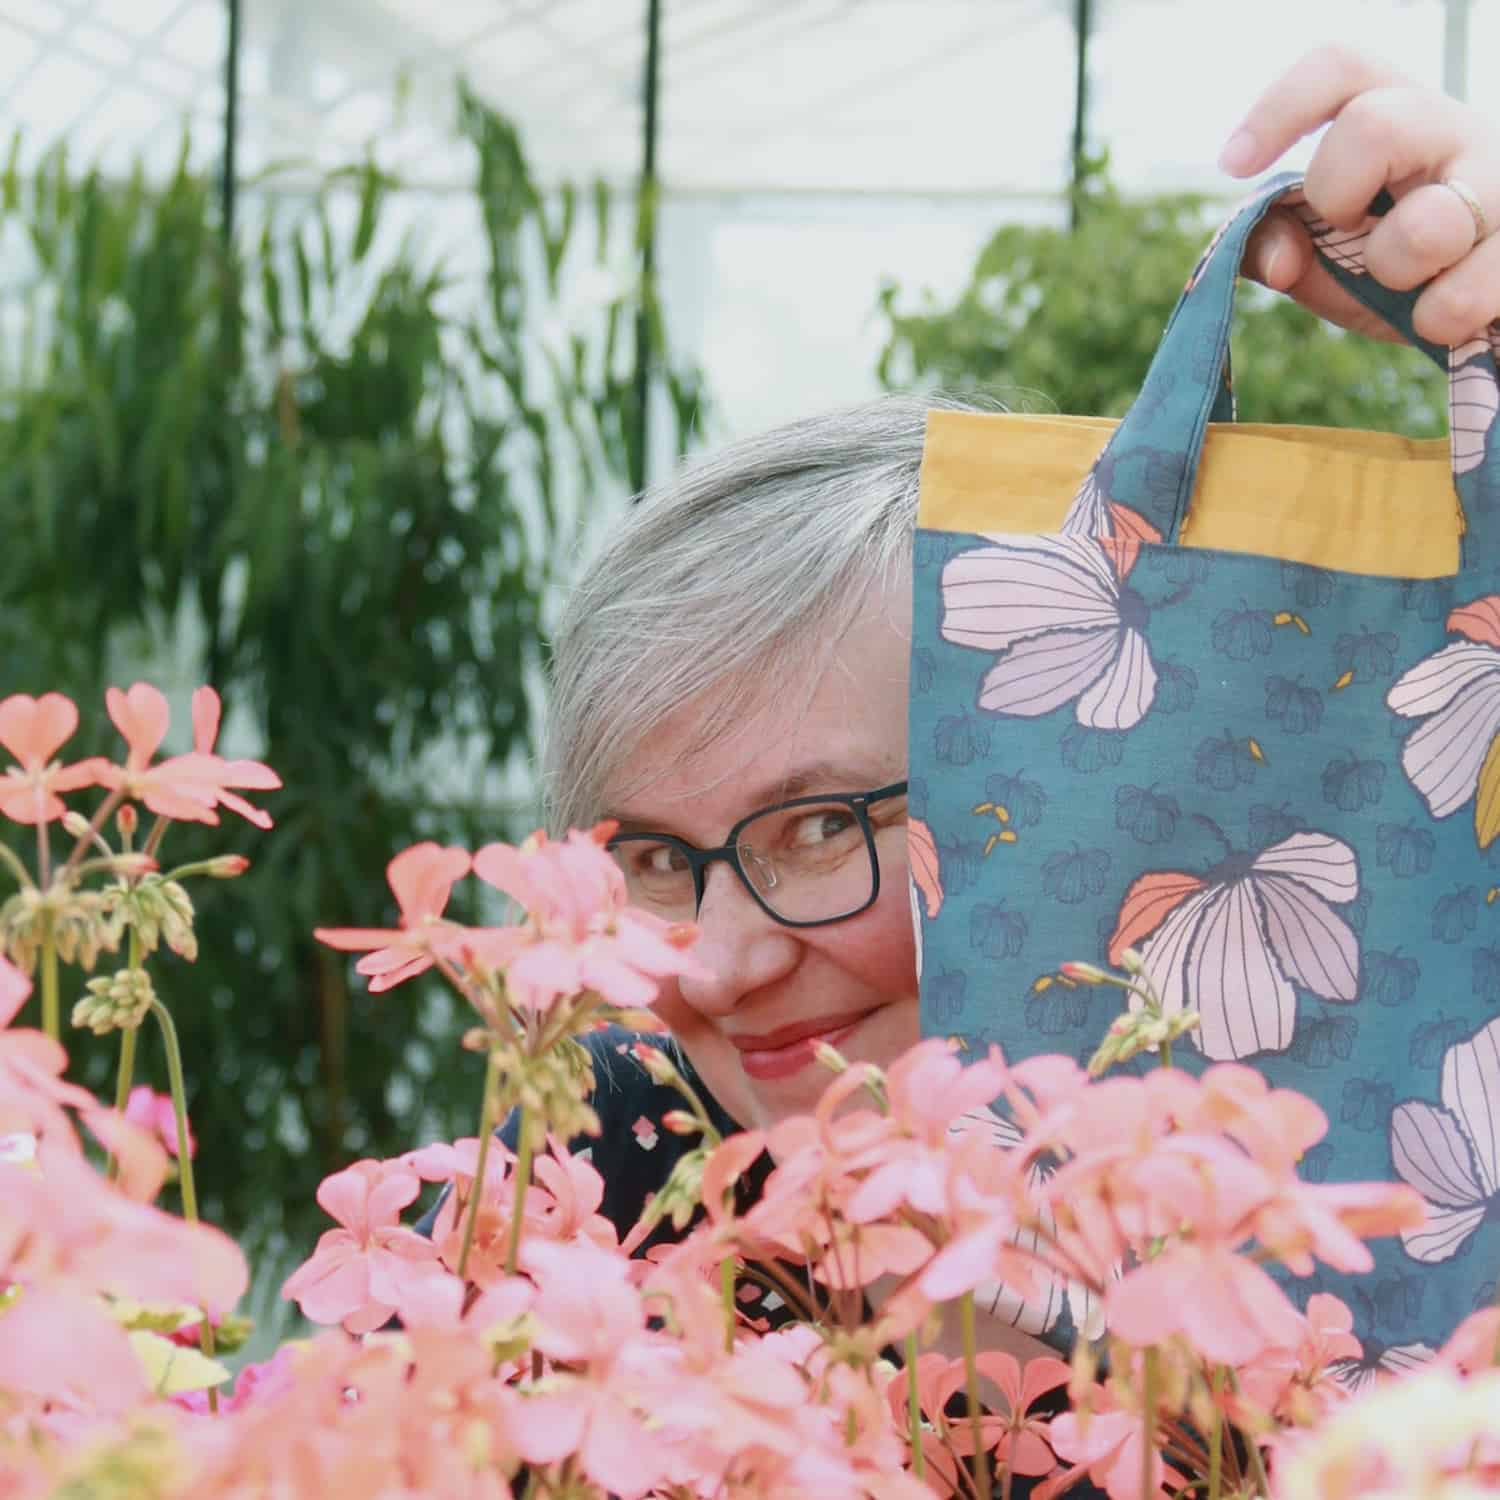 A woman with gray hair peeking out from behind a blue floral bag.